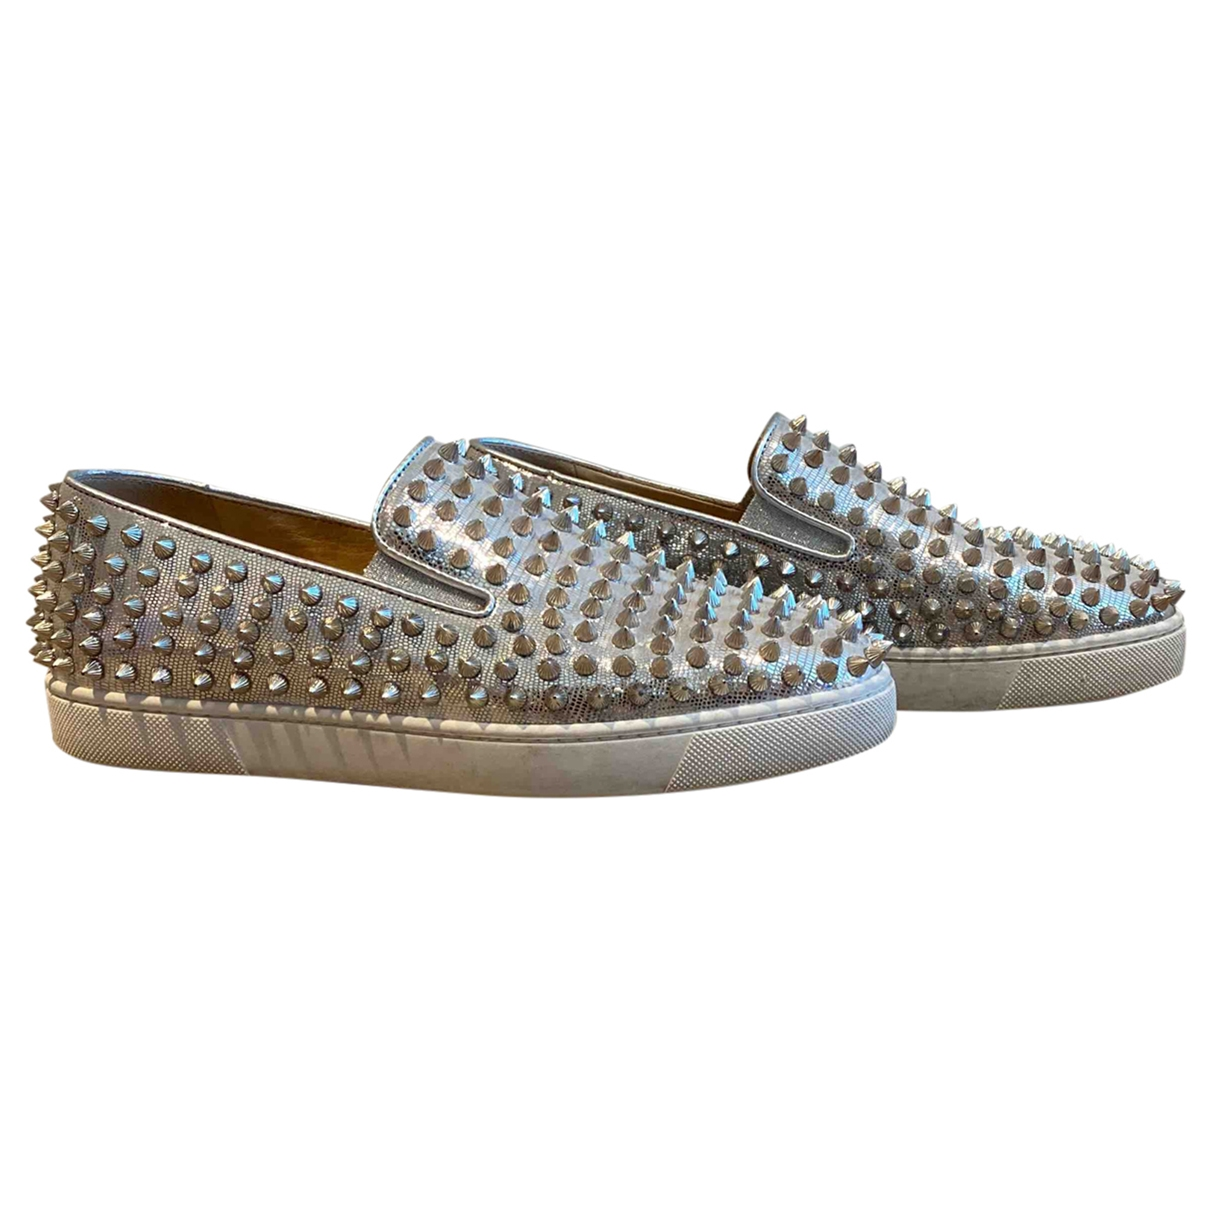 Christian Louboutin Pik Boat Silver Leather Trainers for Women 38 EU